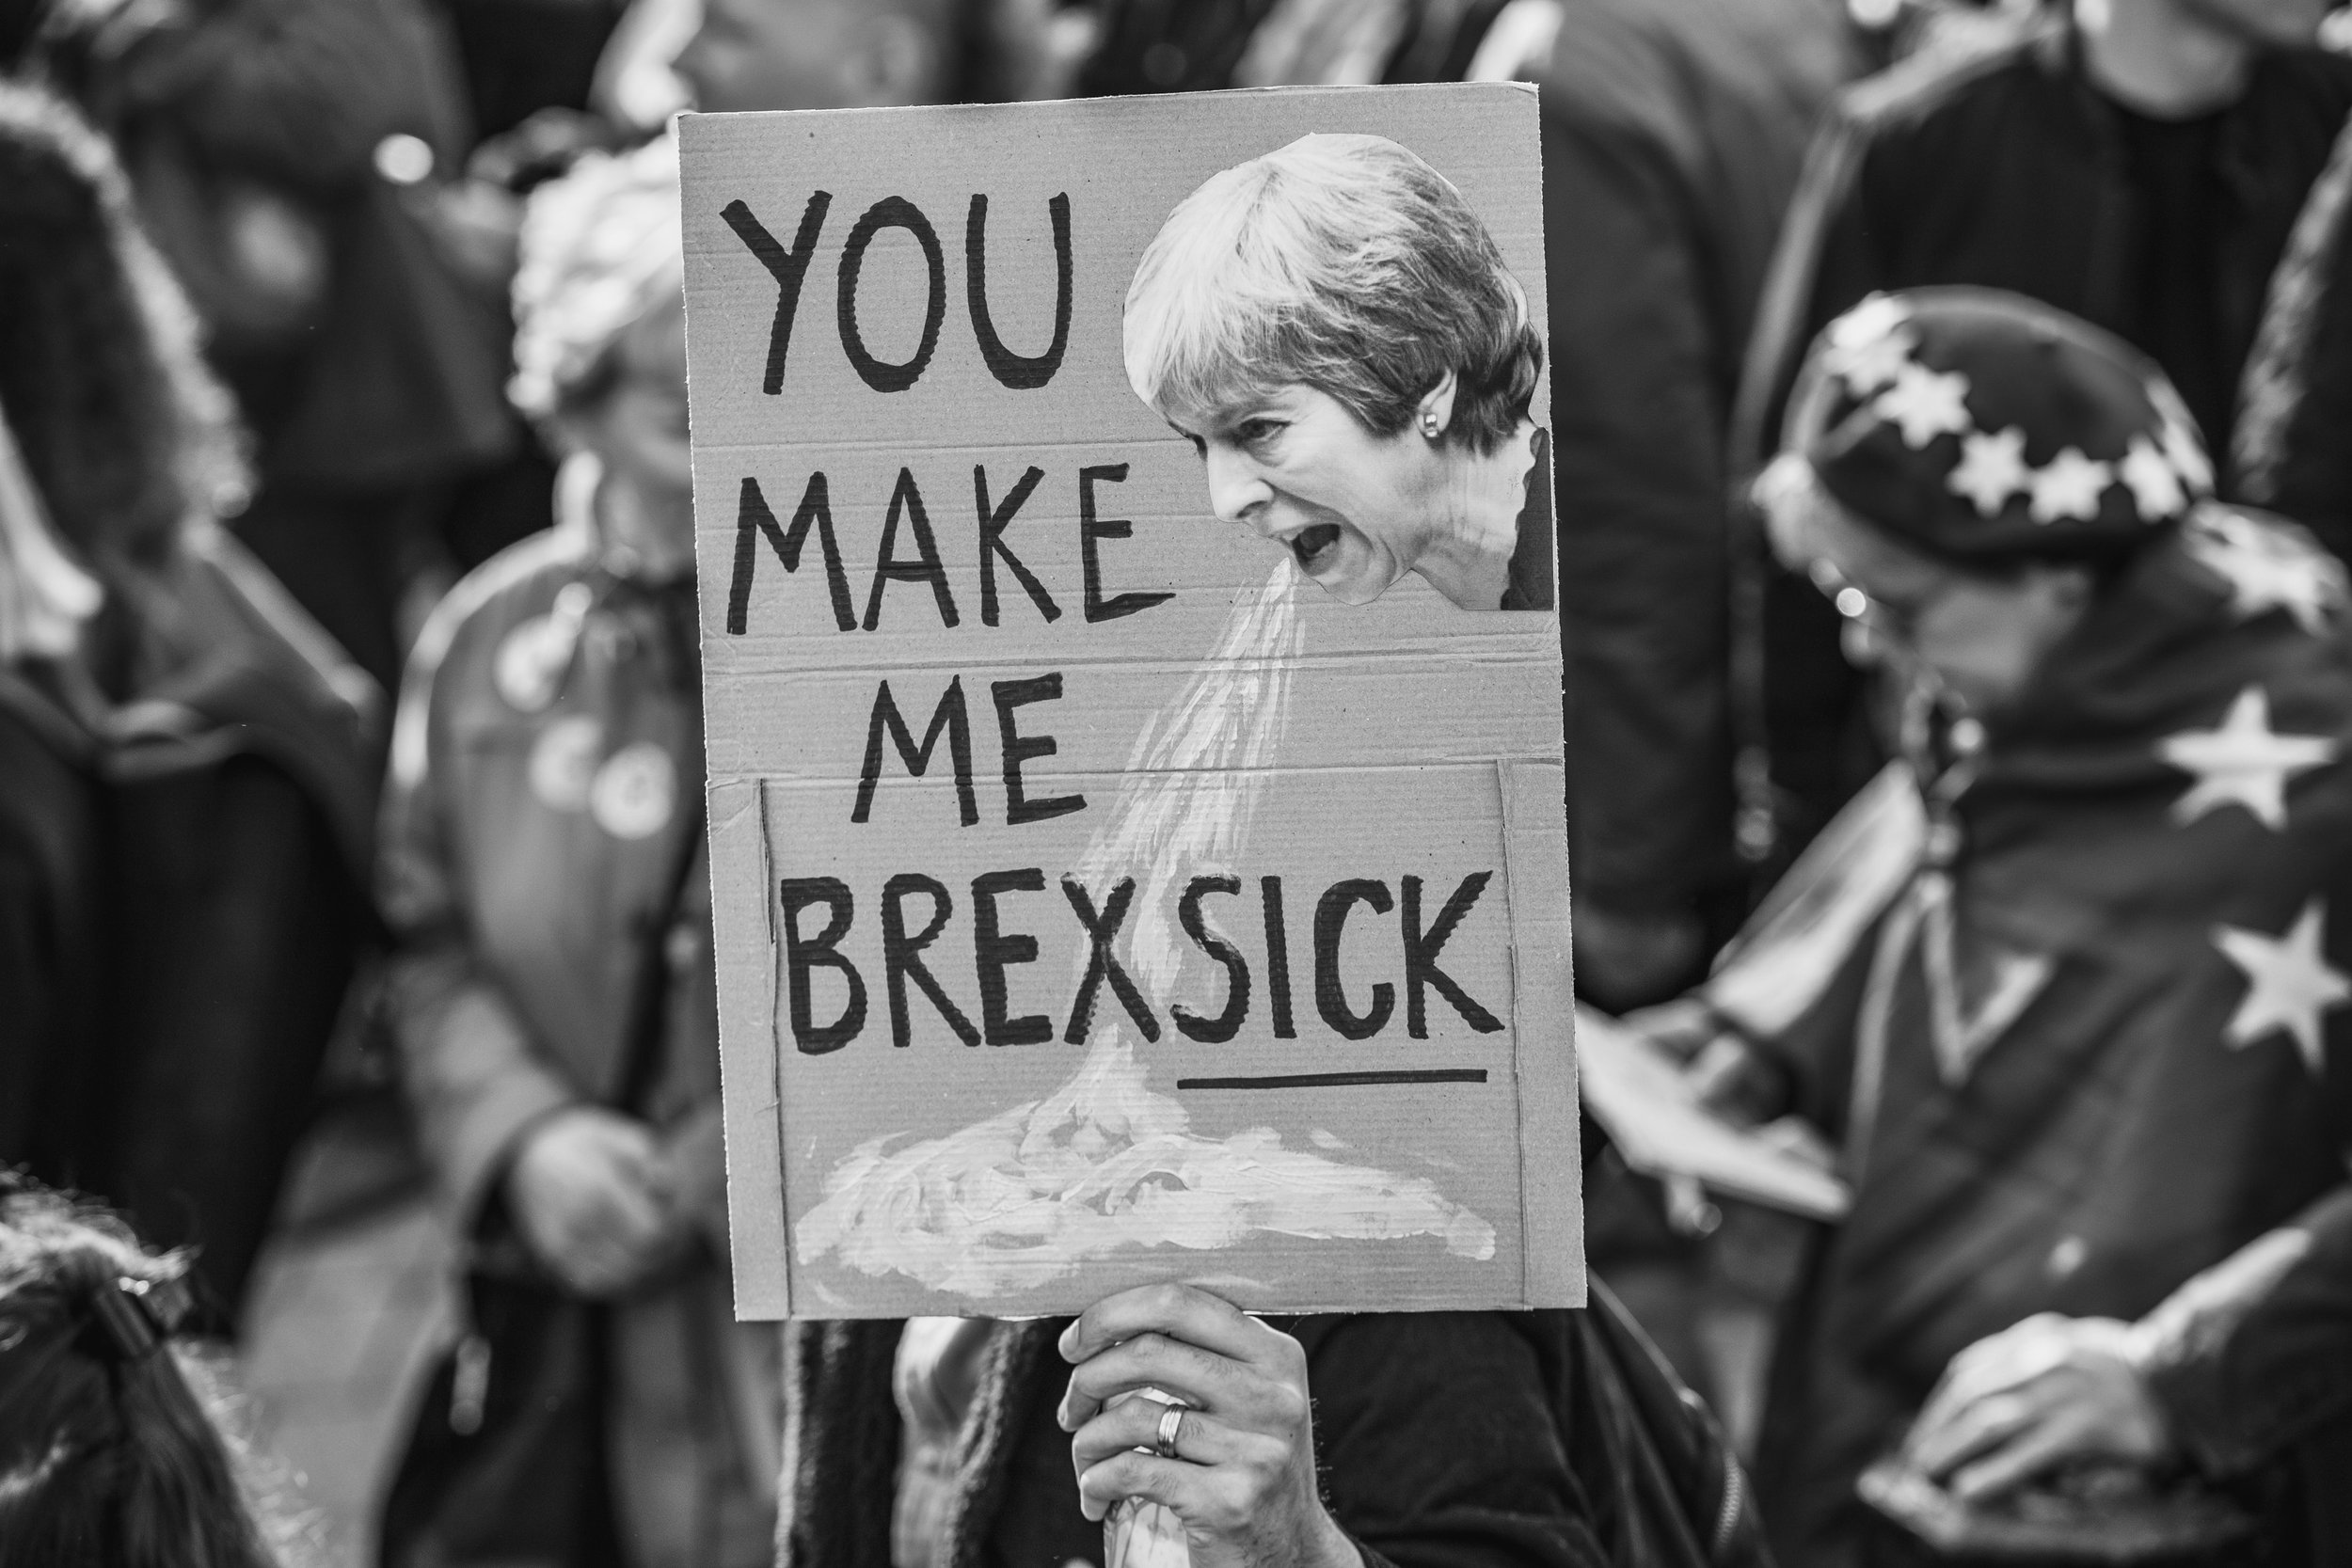 BREXIT_MARCH_230319_46.jpg